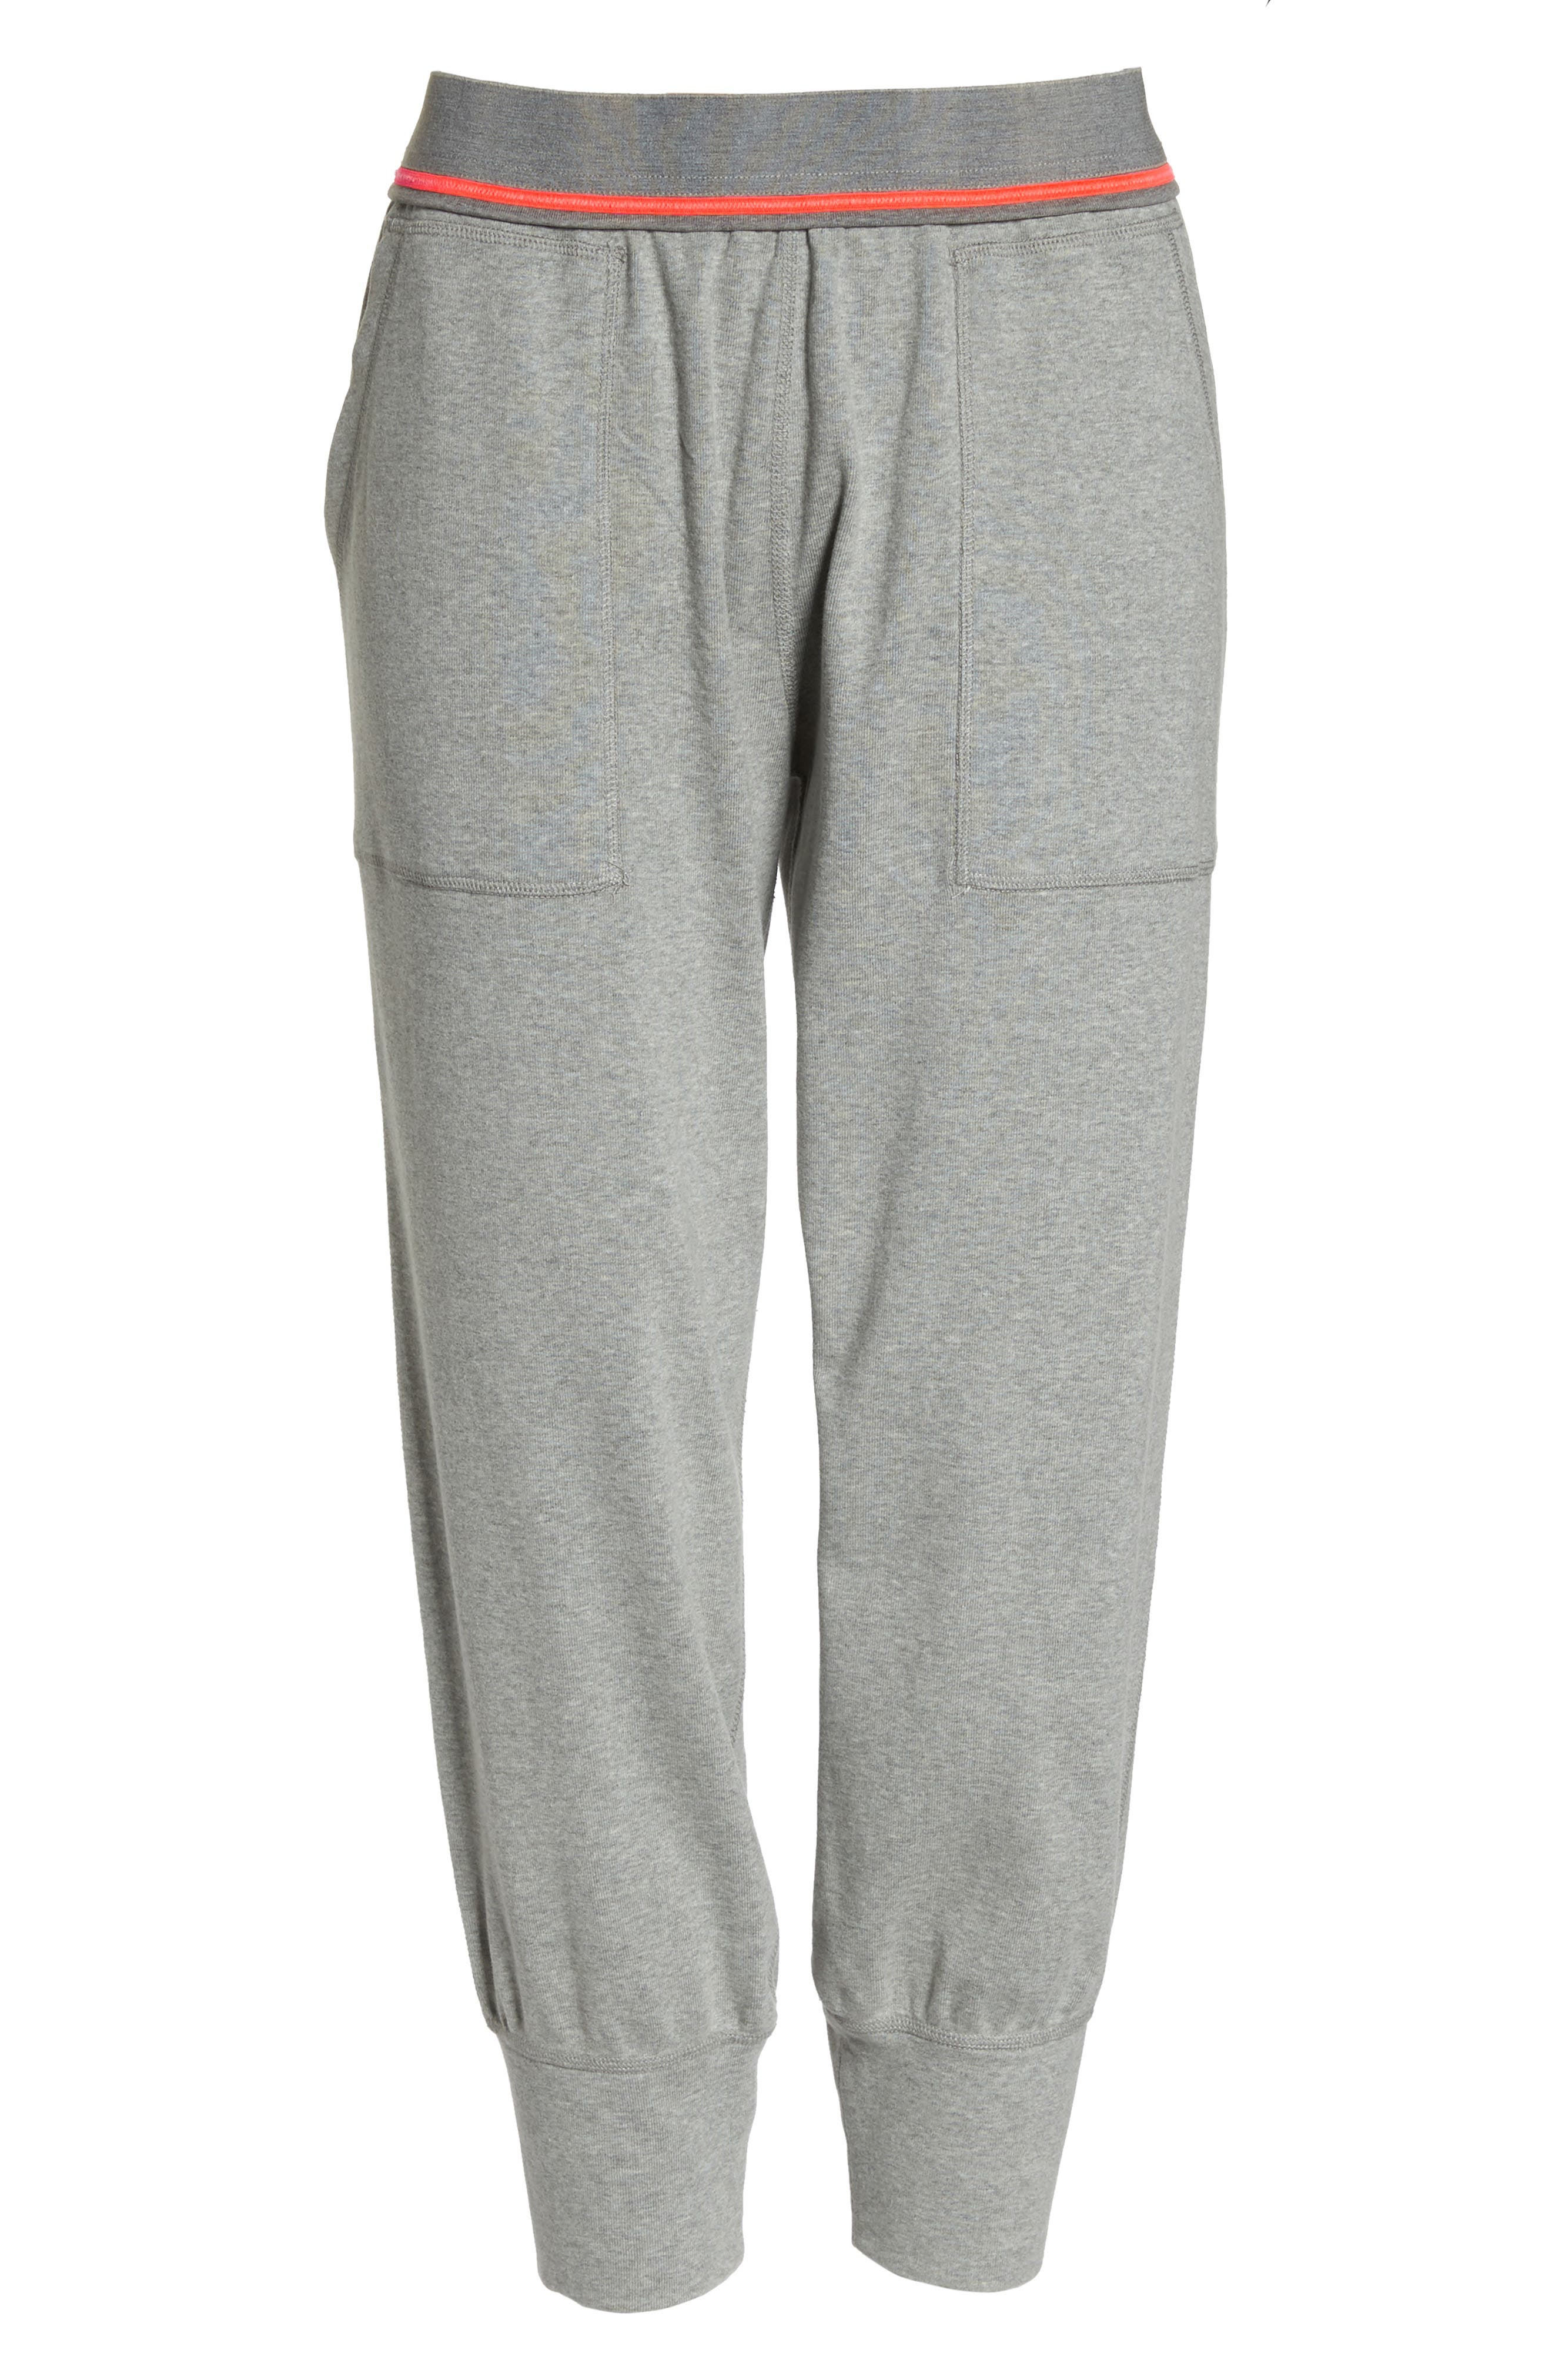 FREE PEOPLE MOVEMENT,                             Jordan Sweatpants,                             Alternate thumbnail 7, color,                             030